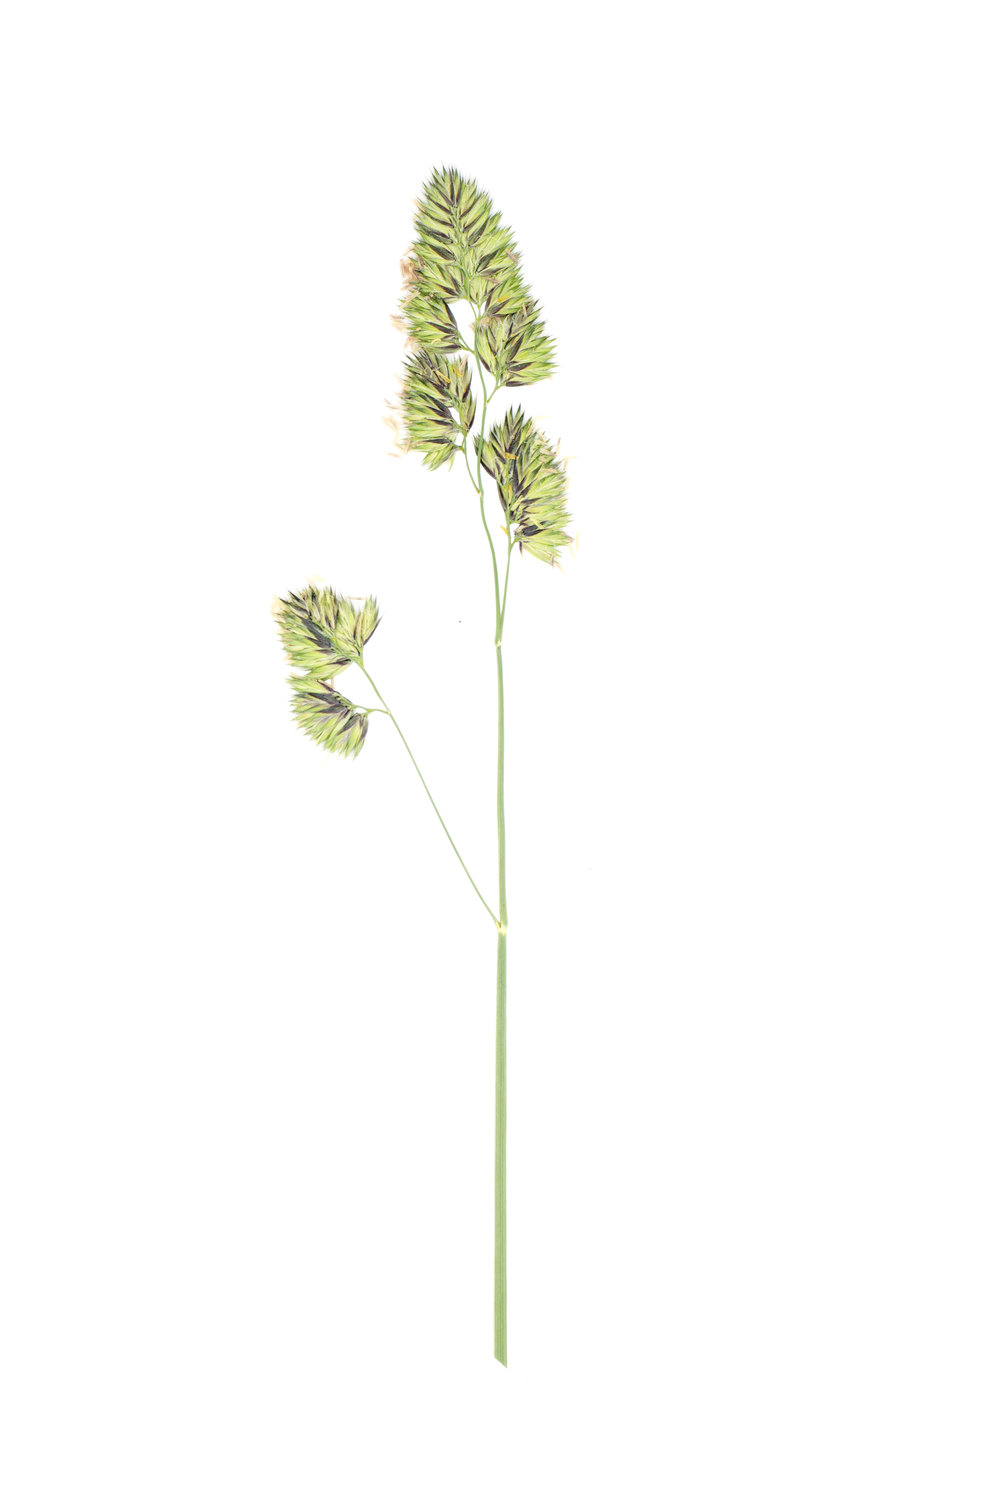 Dactylis glomerata / Cocksfoot or Orchardgrass